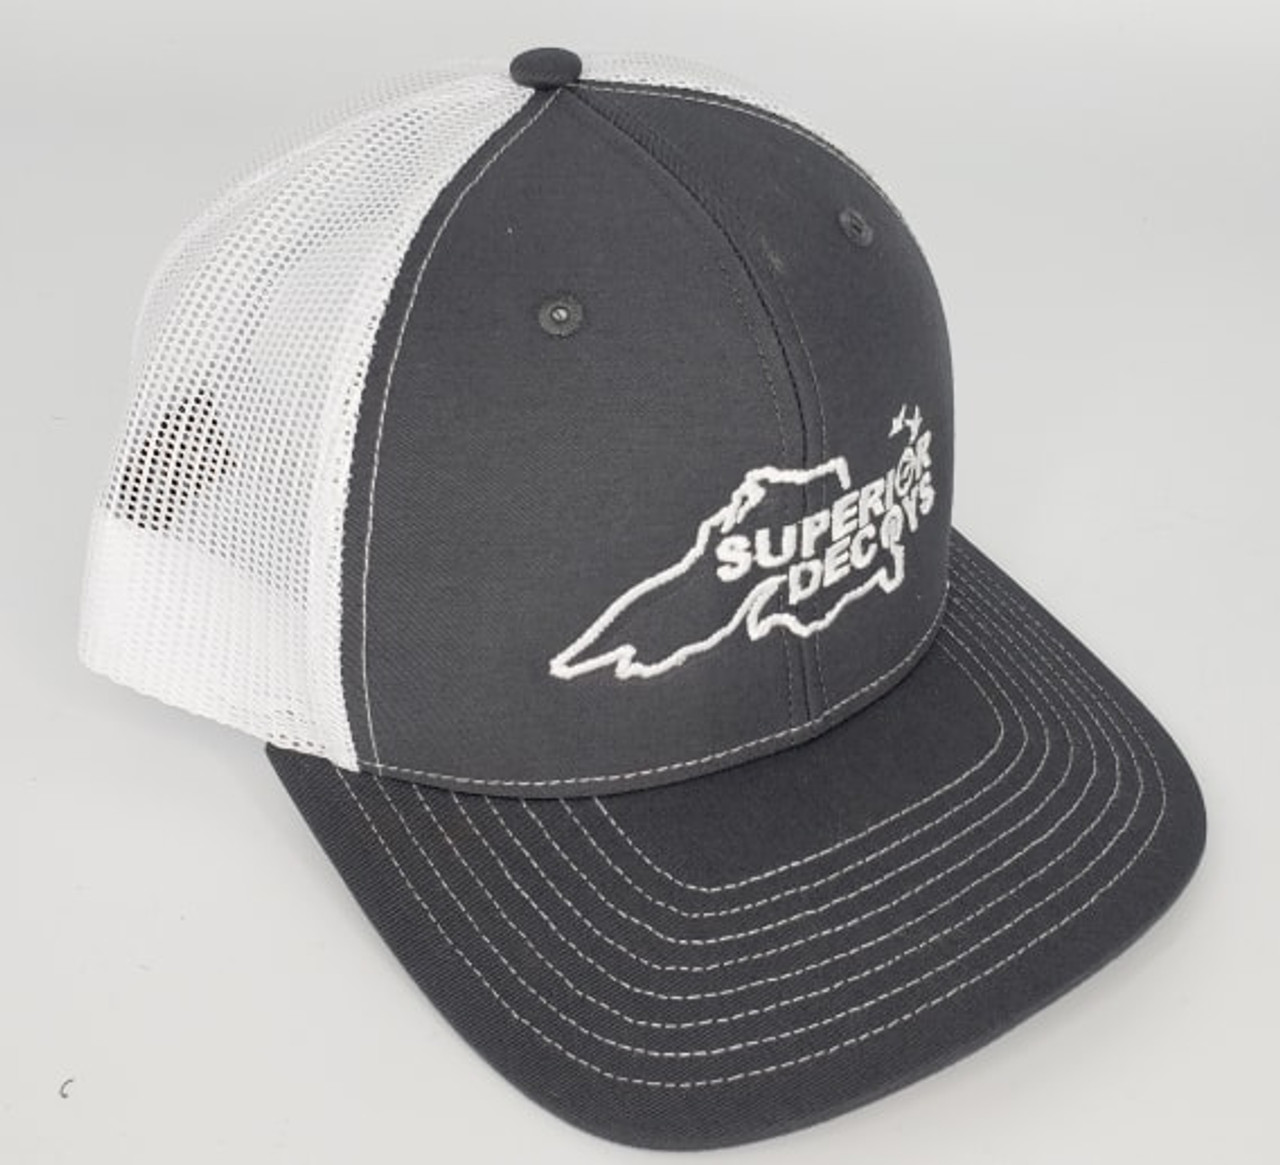 Superior Decoys Charcoal/White Snapback